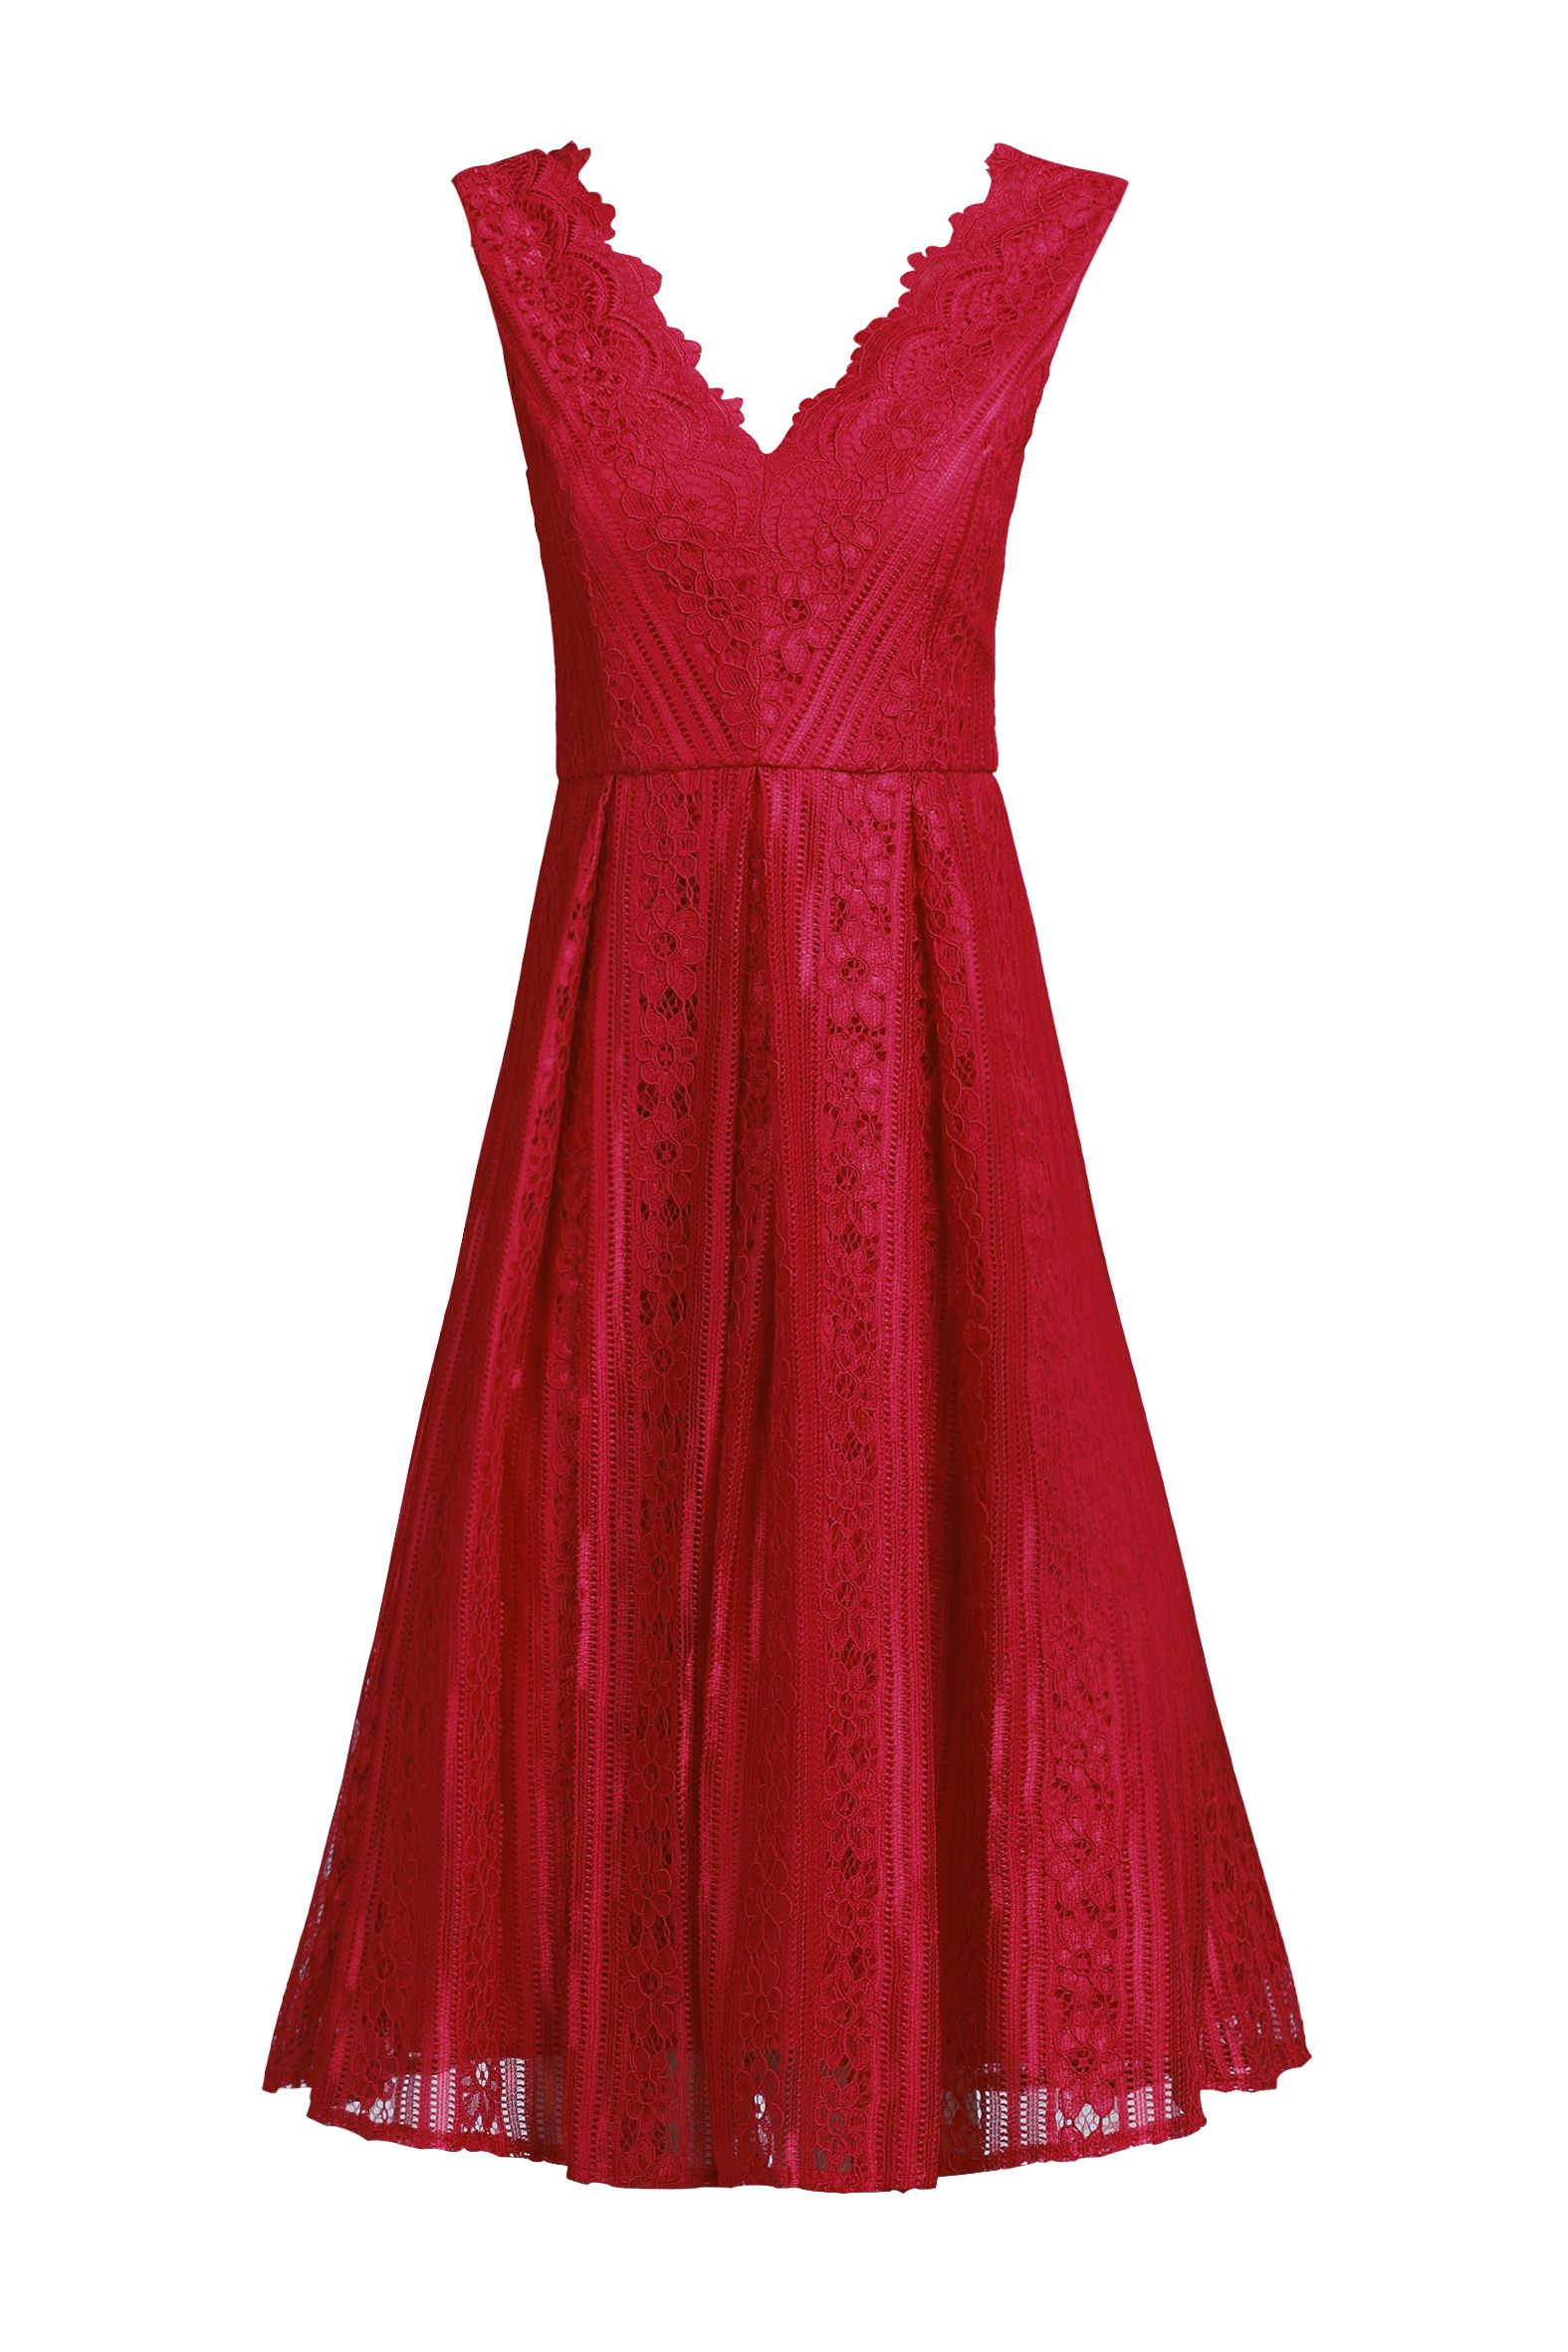 Jolie Moi Striped Pattern Lace Prom Dress, Red